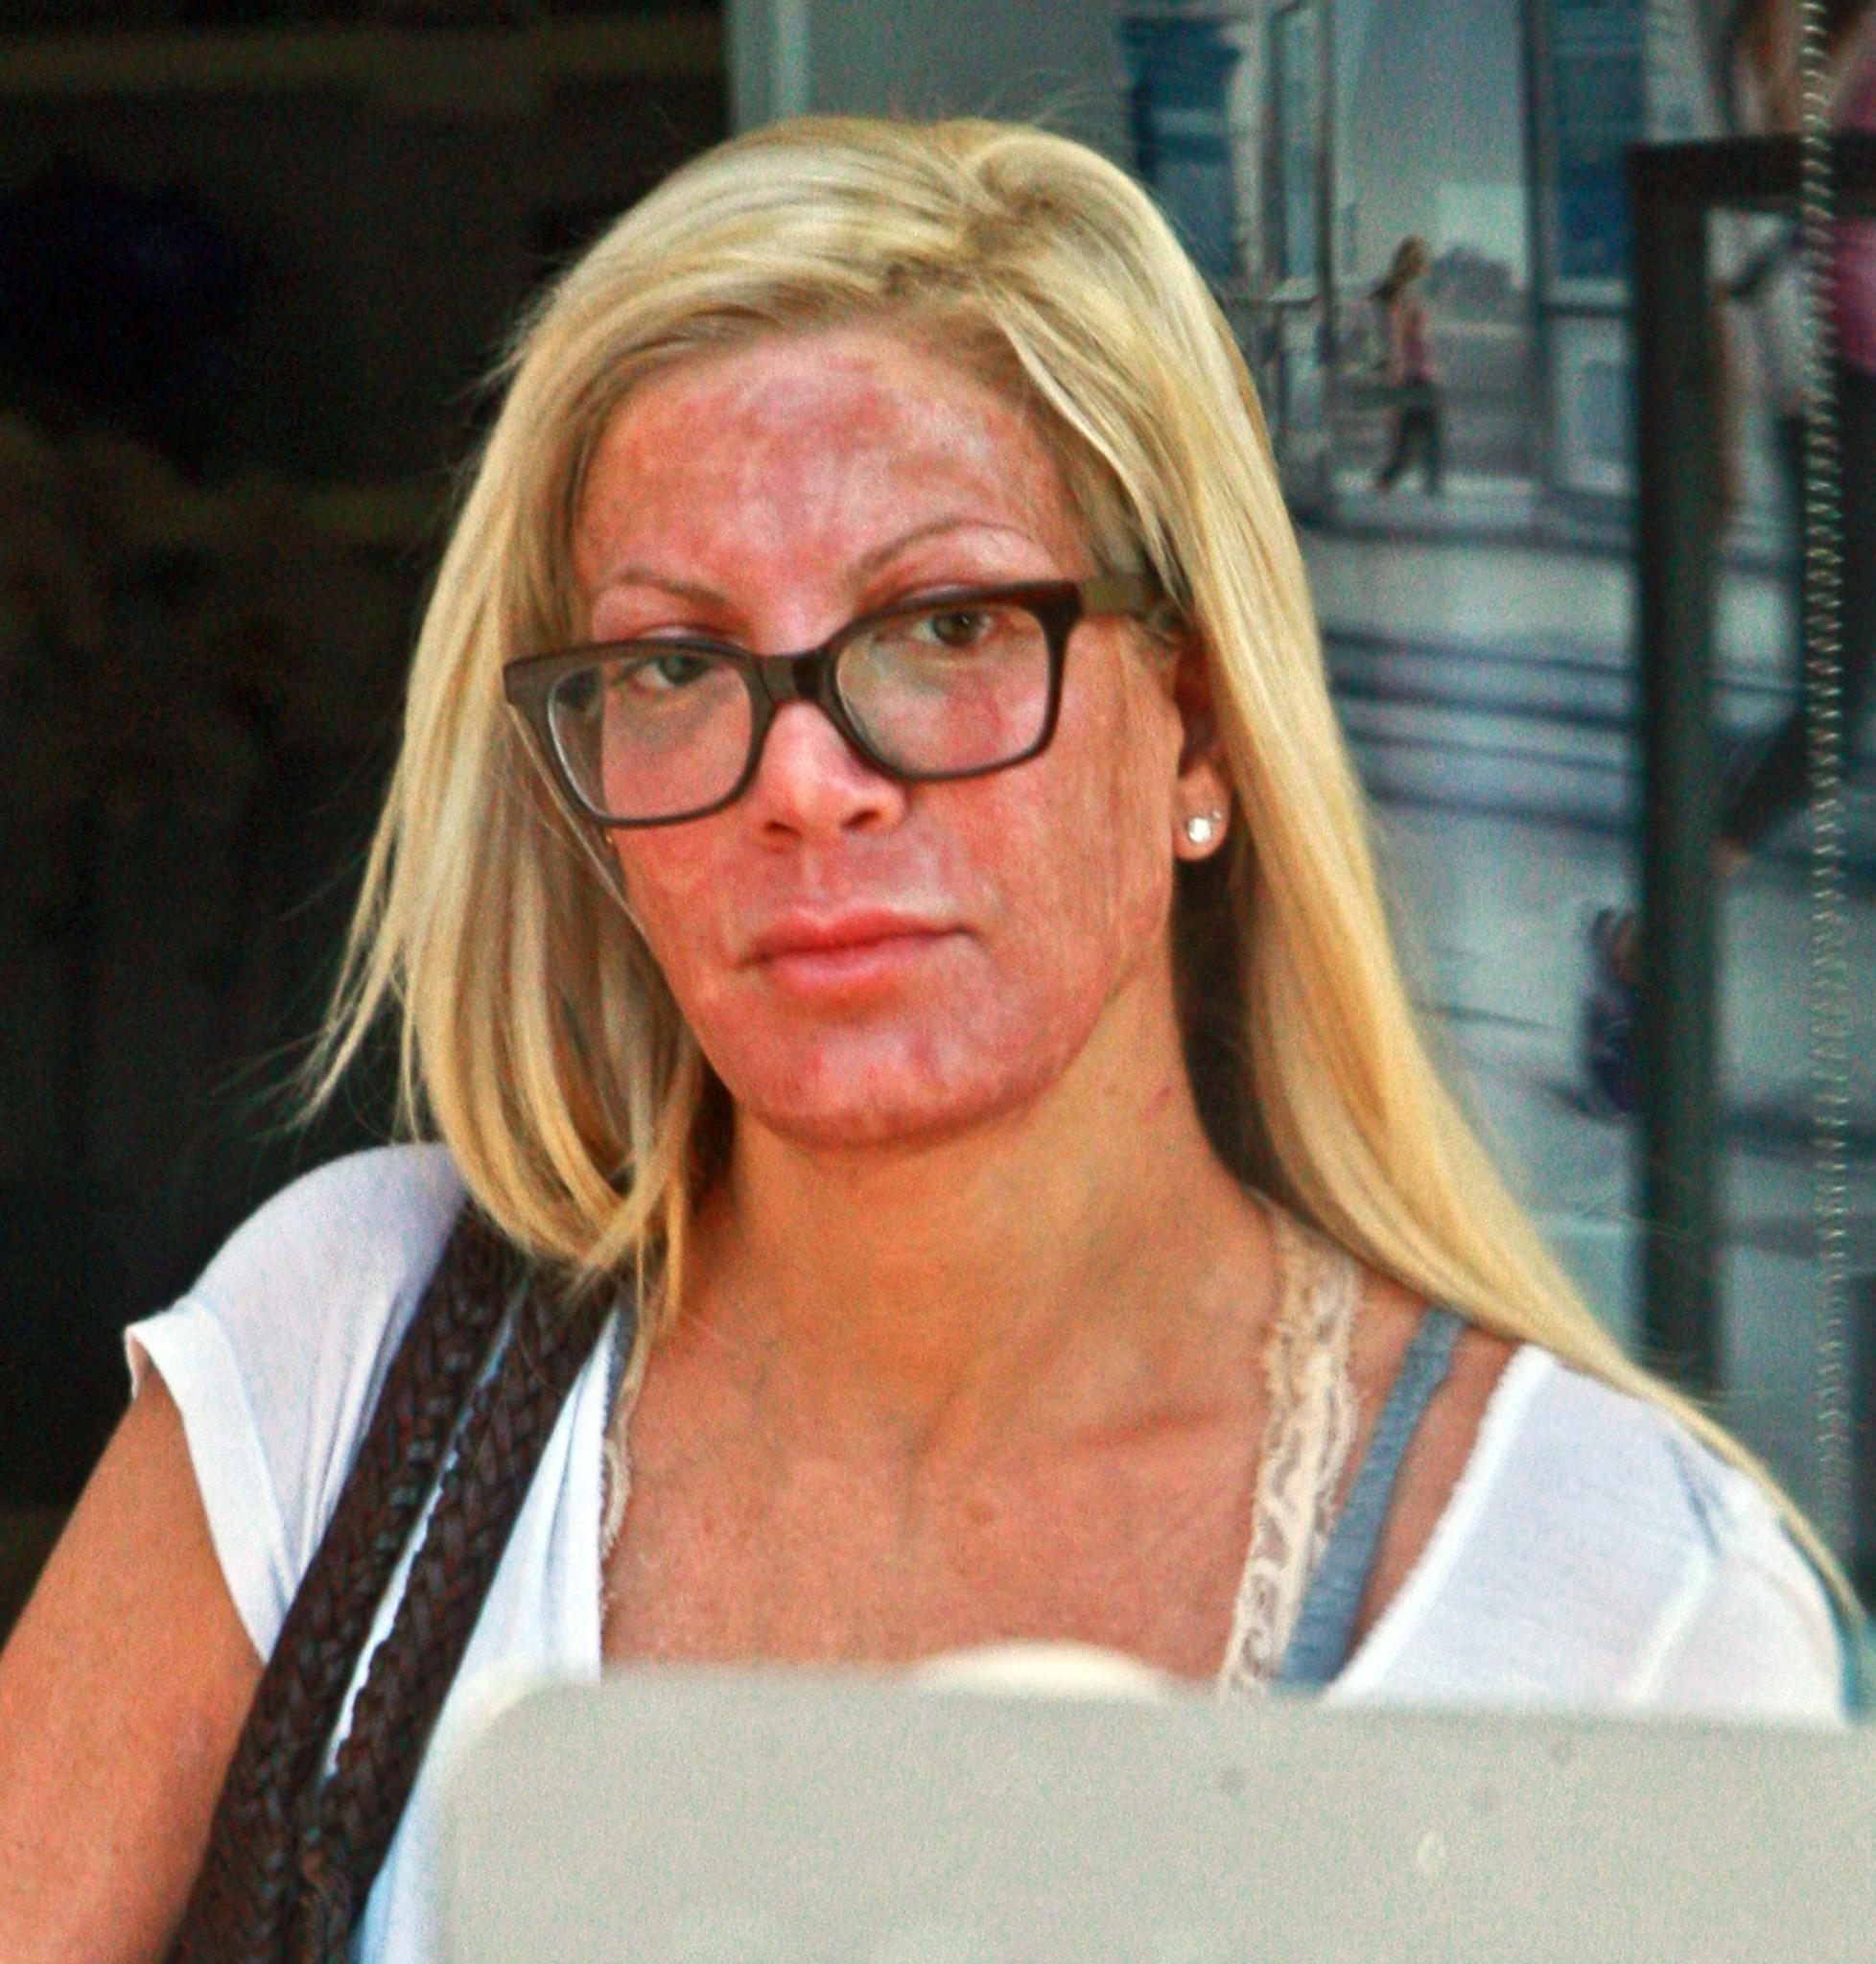 Before And After Plastic Surgery Pics Tori Spelling photo - 1